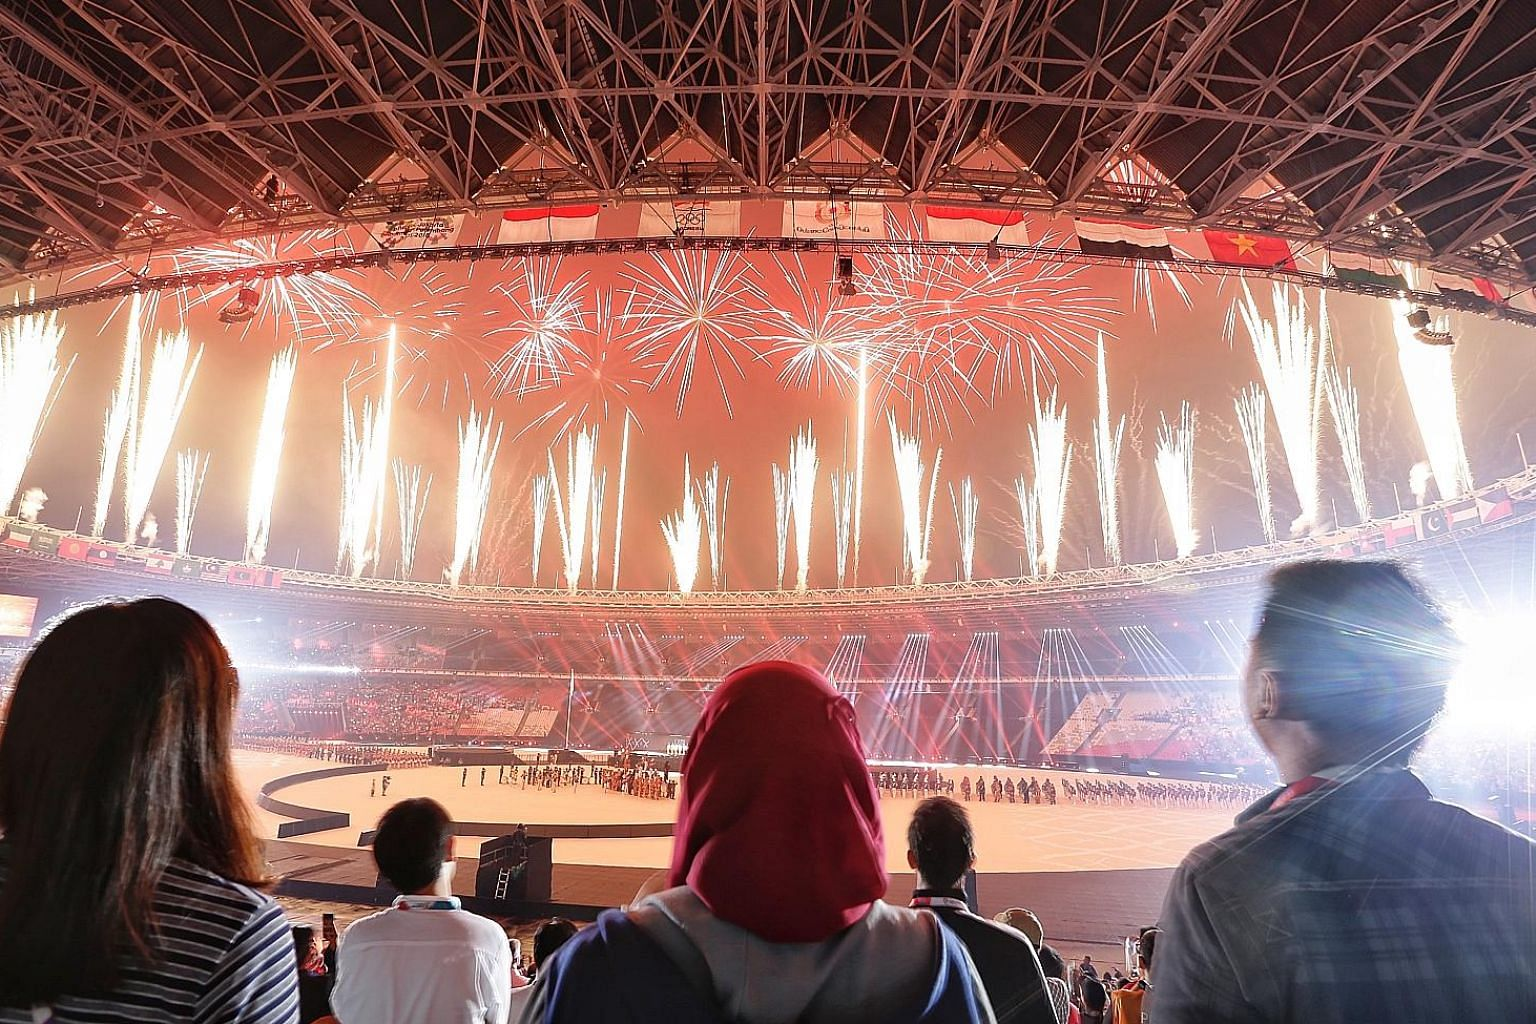 A dazzling display of fireworks during the closing ceremony of the 18th Asian Games in Jakarta yesterday.